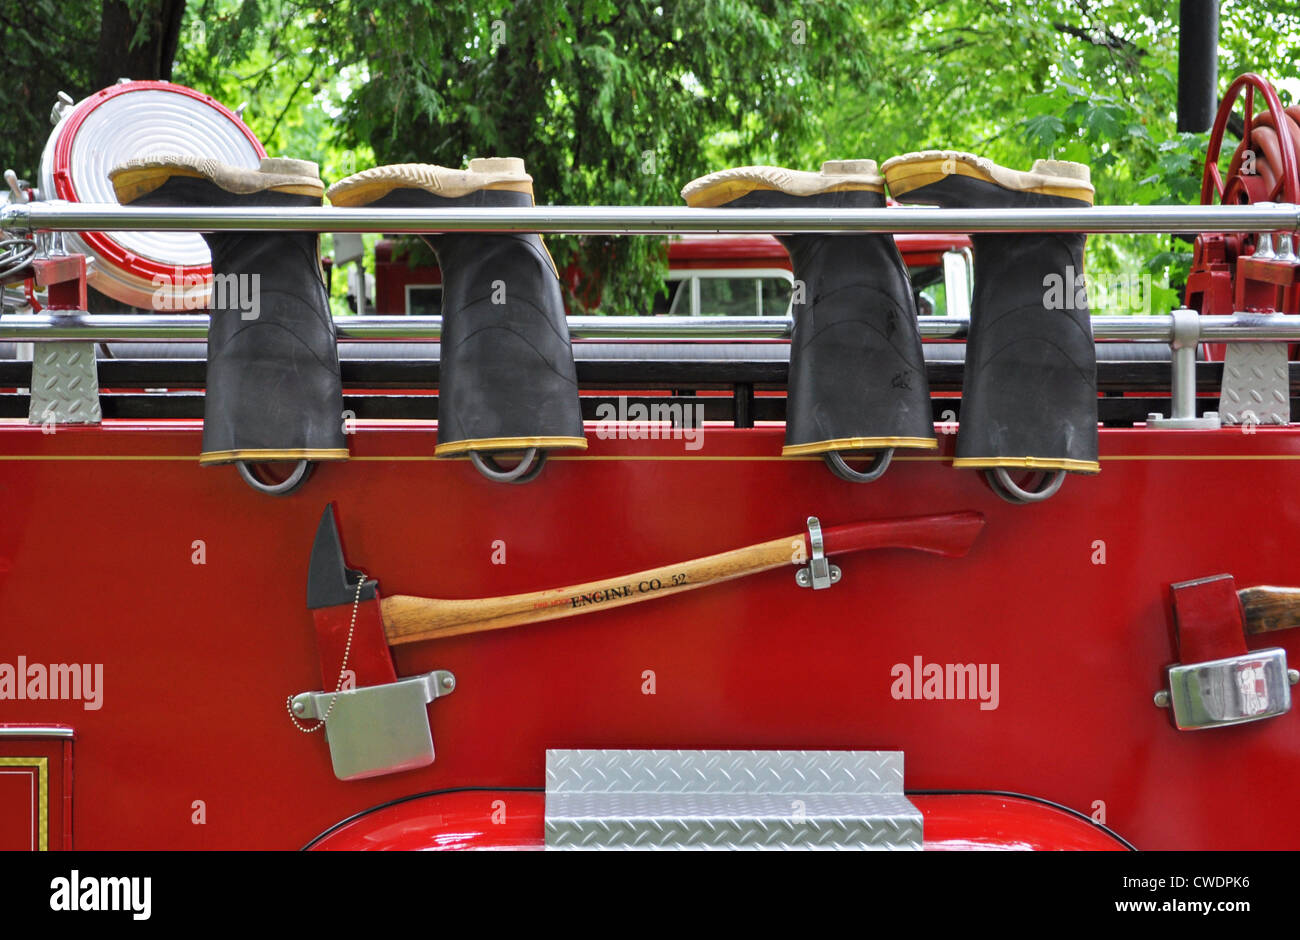 The bright red and chrome of a classic fire engine provide a colorful background for the fire fighter's safety equipment. Stock Photo